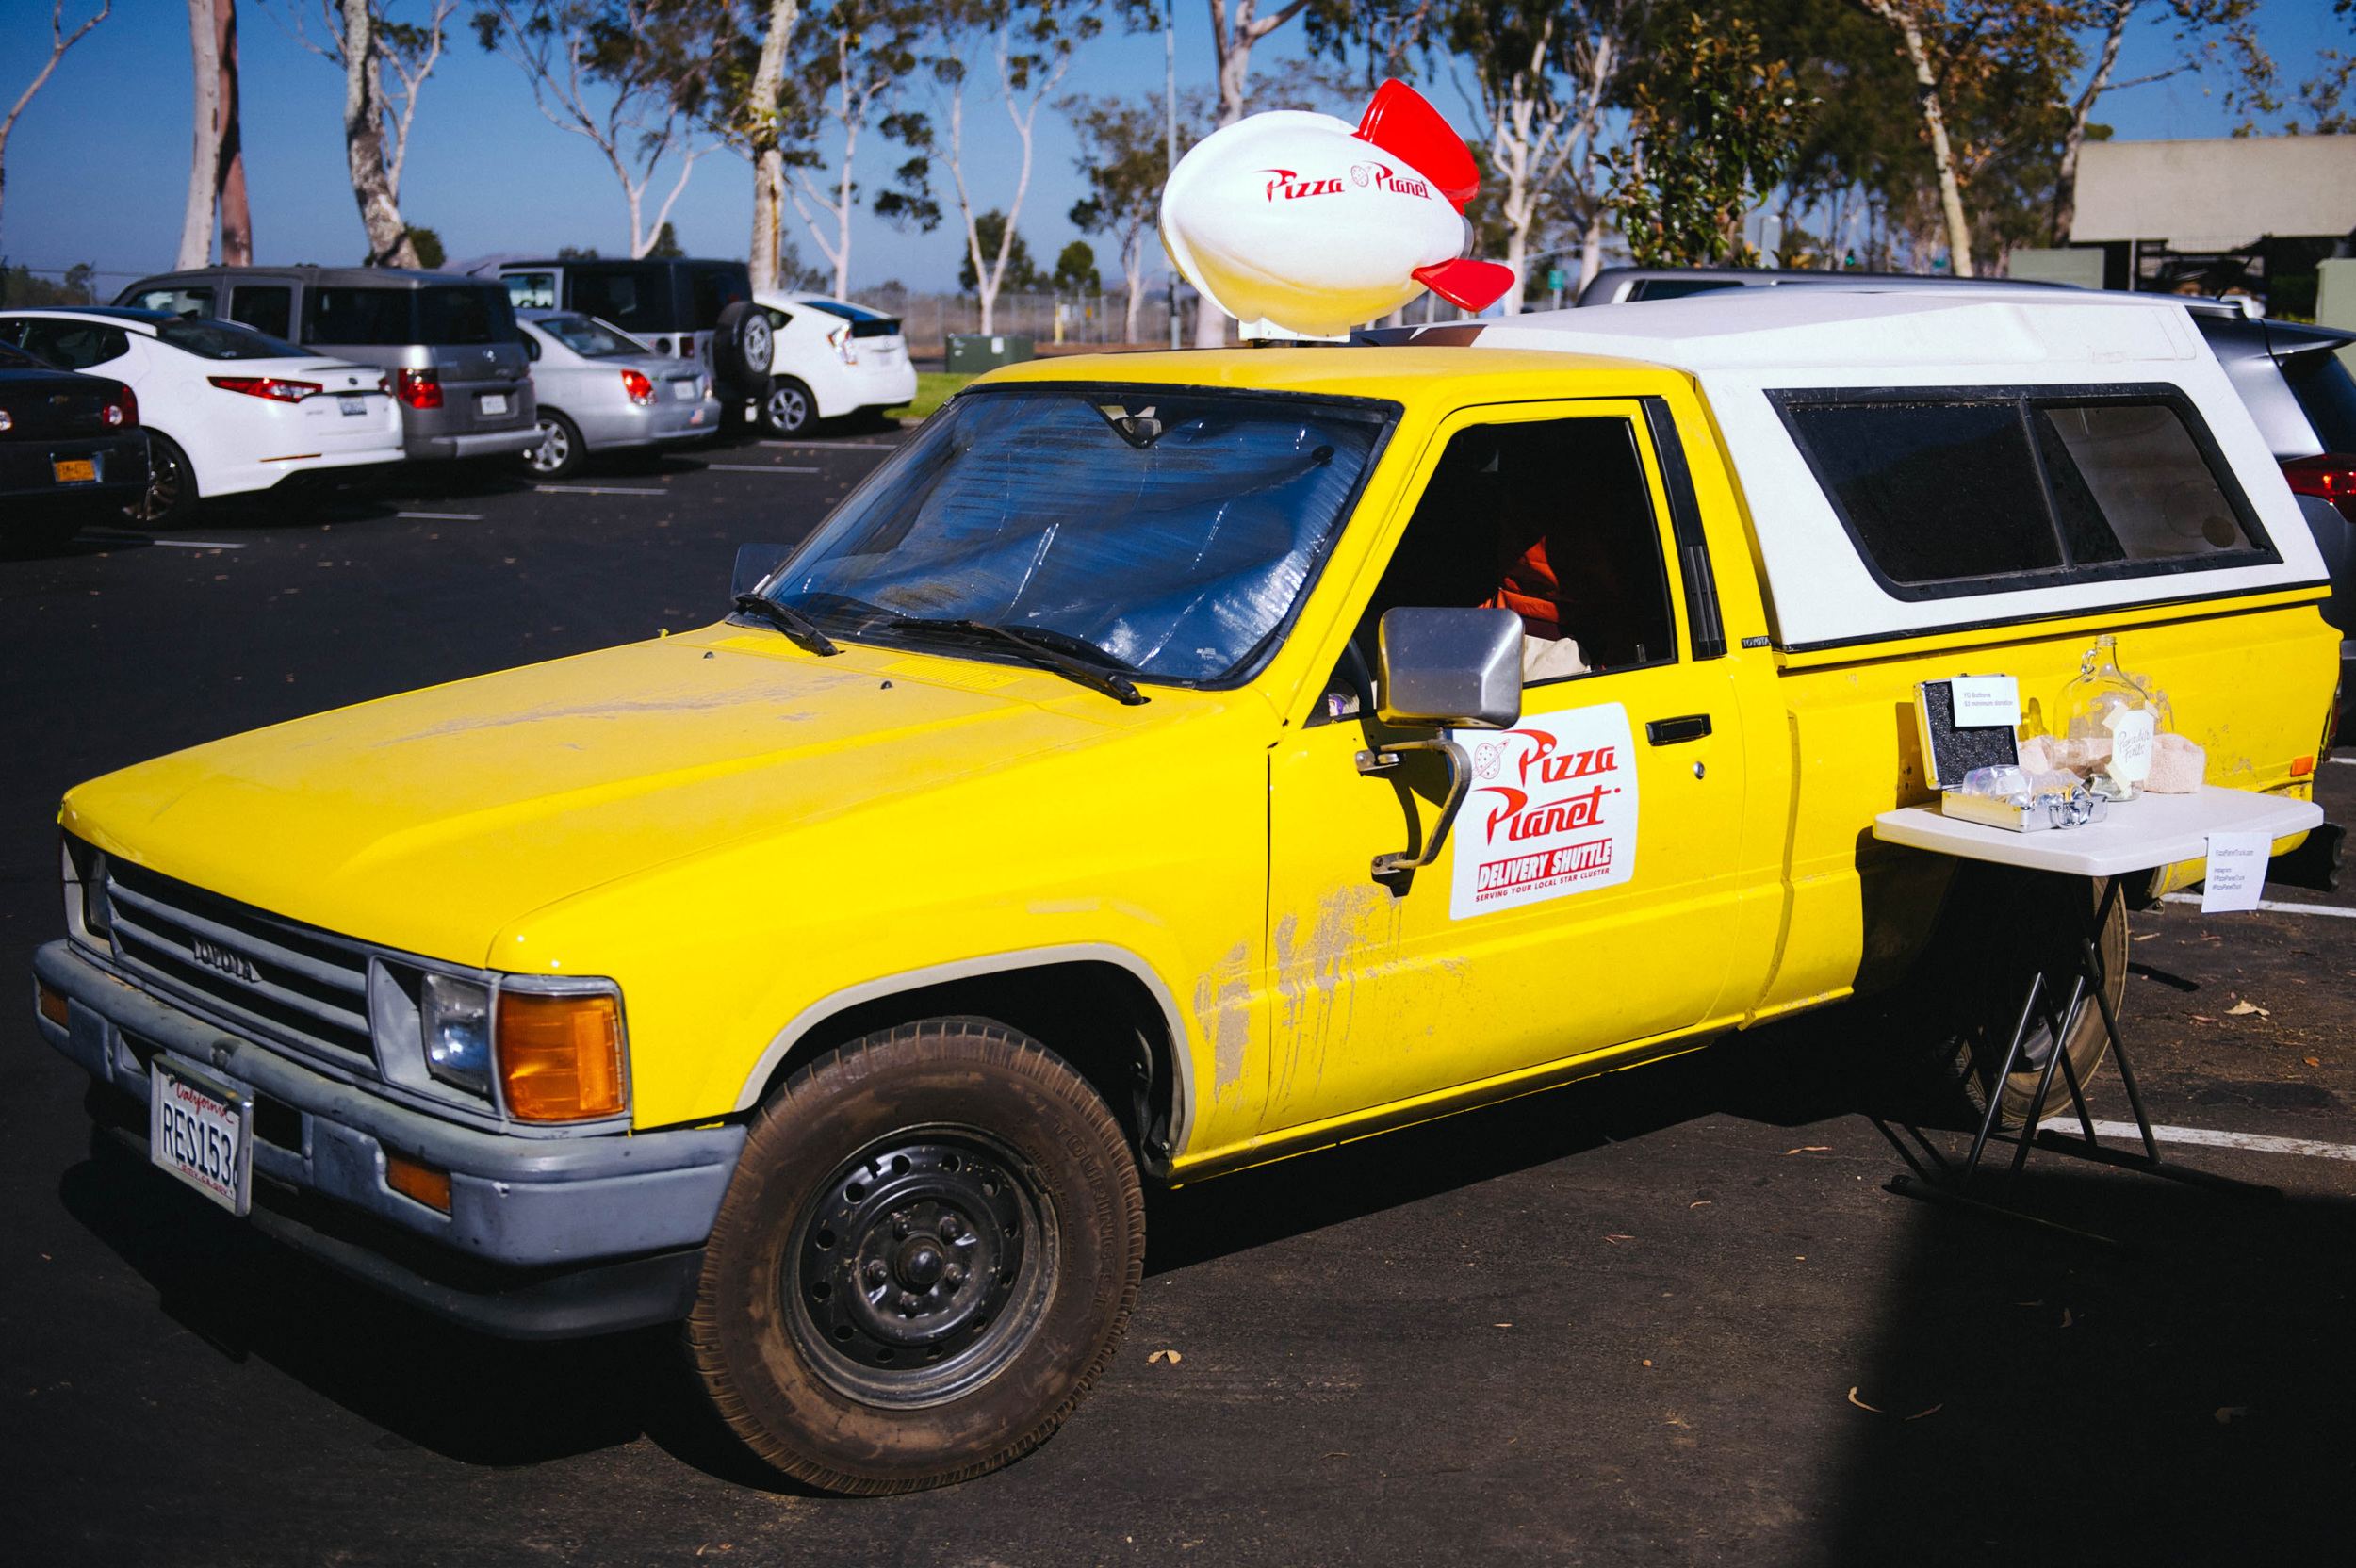 The Pizza Planet Truck courtesy of Marco Bongiorno and friends. Photo by Lisa Diaz.